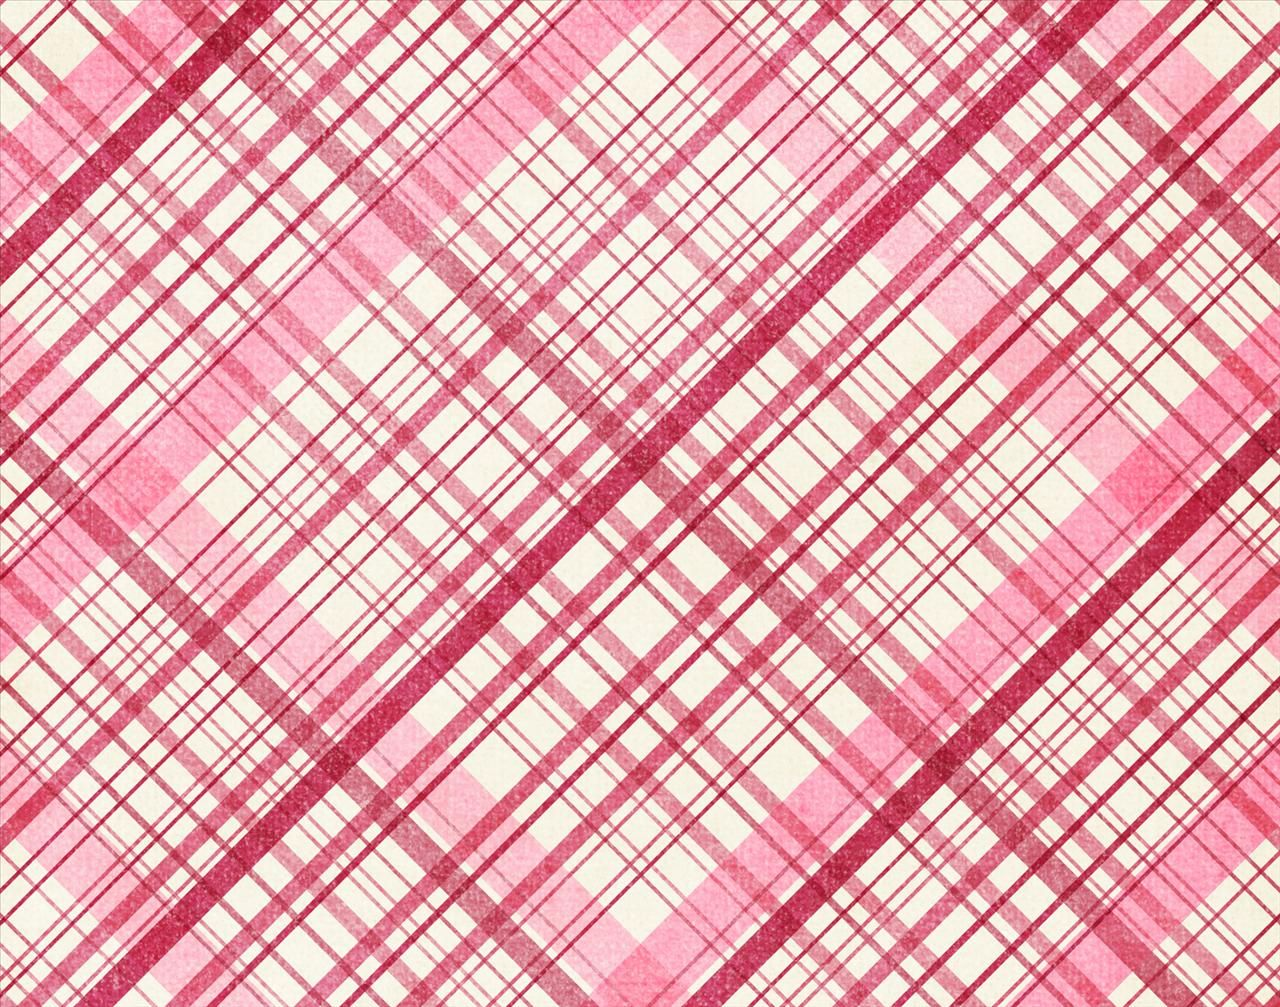 Picaboo Free Backgrounds View Entry From Pamela Oneil's